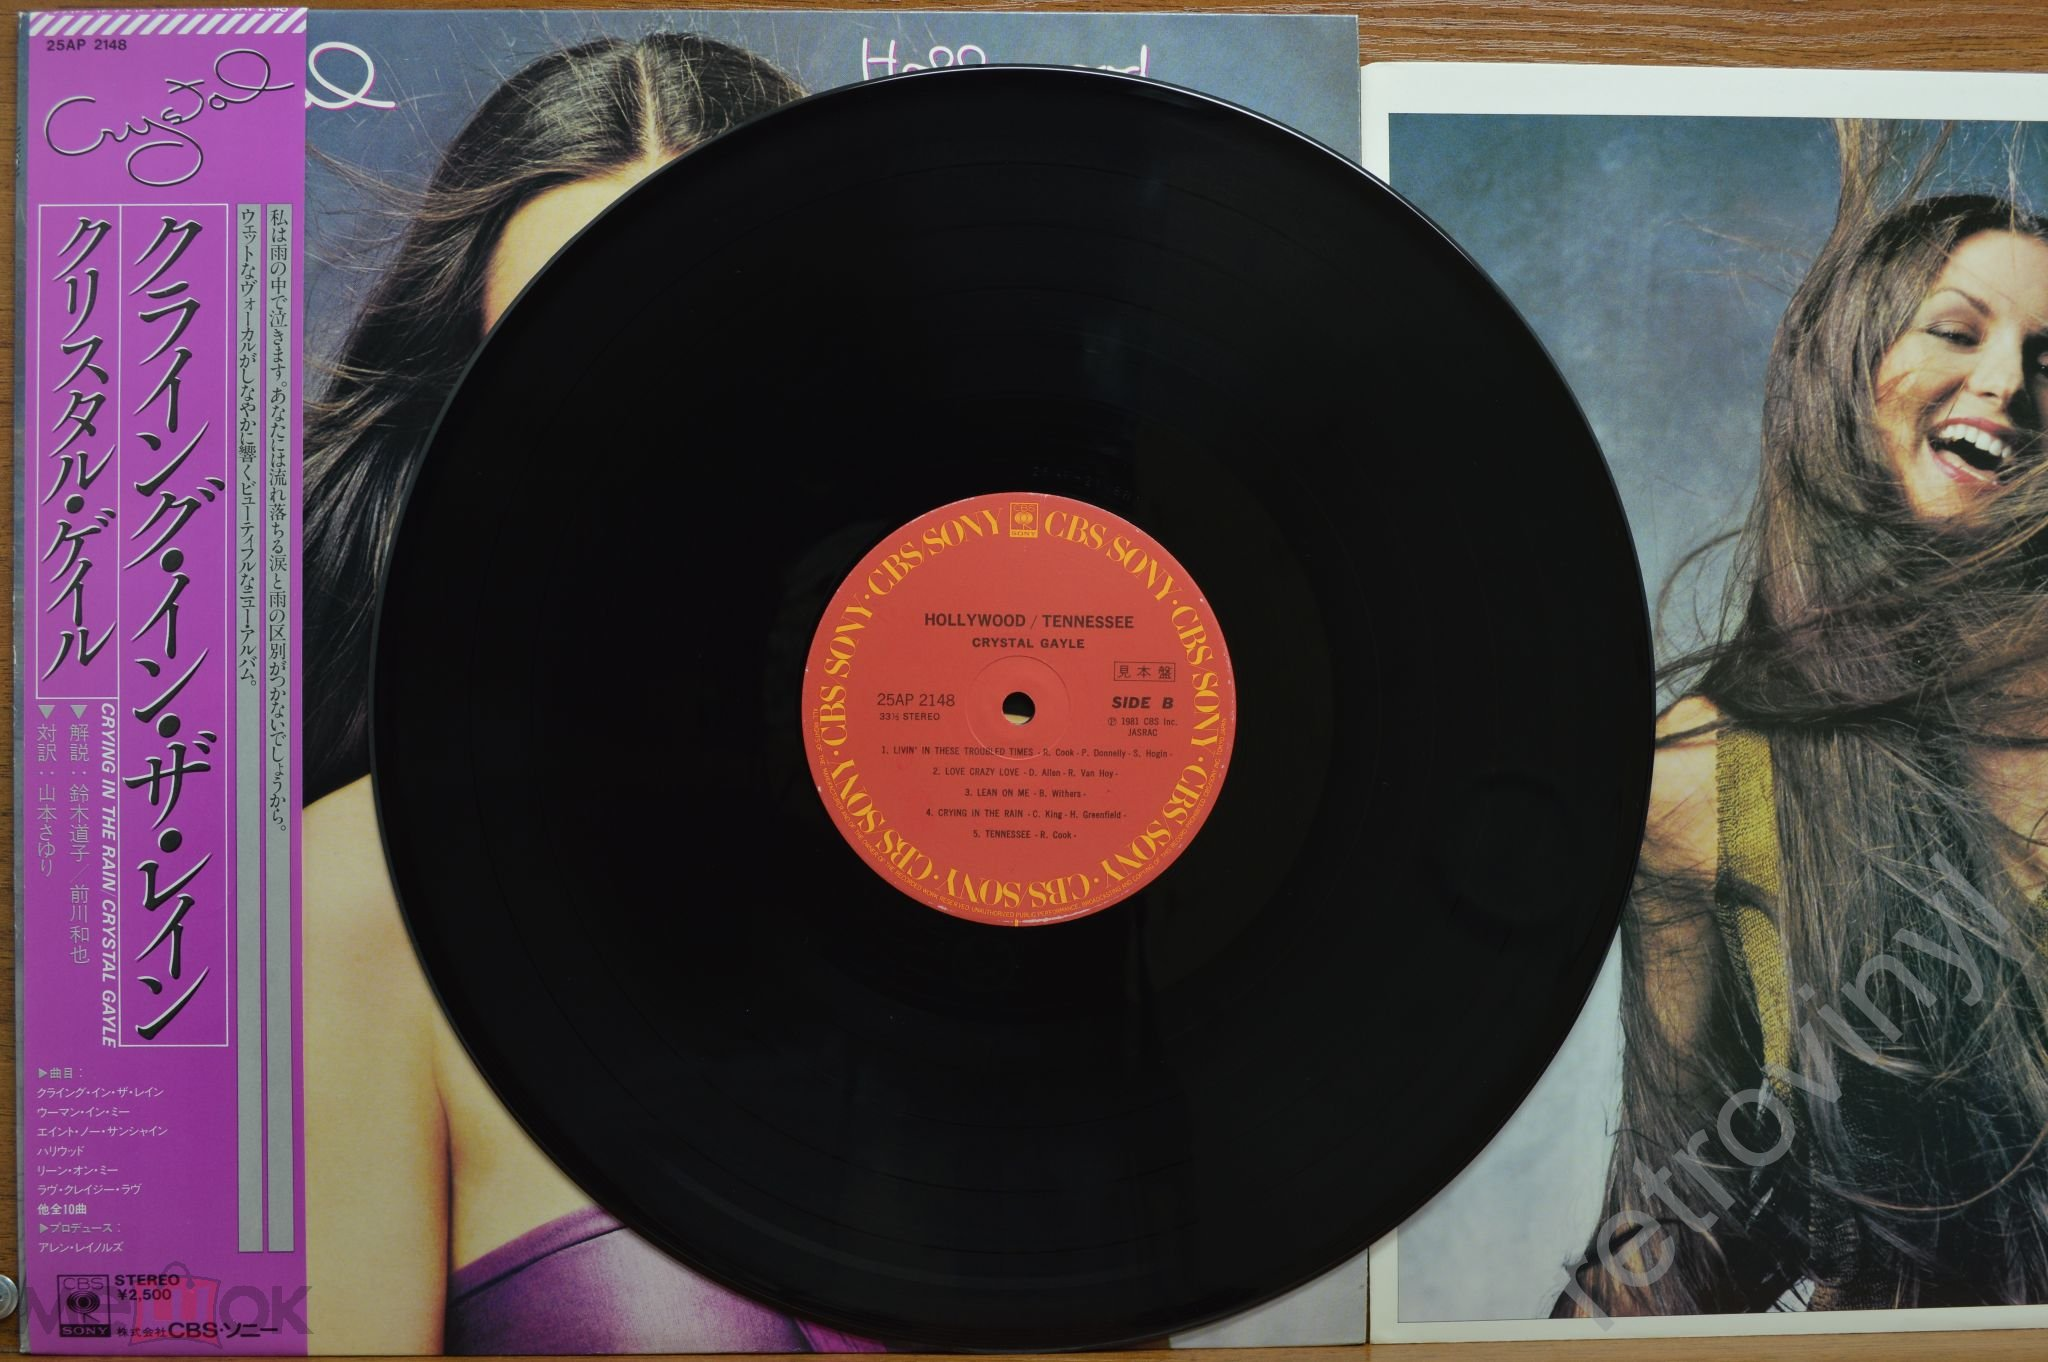 CRYSTAL GAYLE - Hollywood, Tennessee - 25AP 2148 CBS/Sony =PROMO= ORIGINAL 1981 года JAPAN пресс MIN